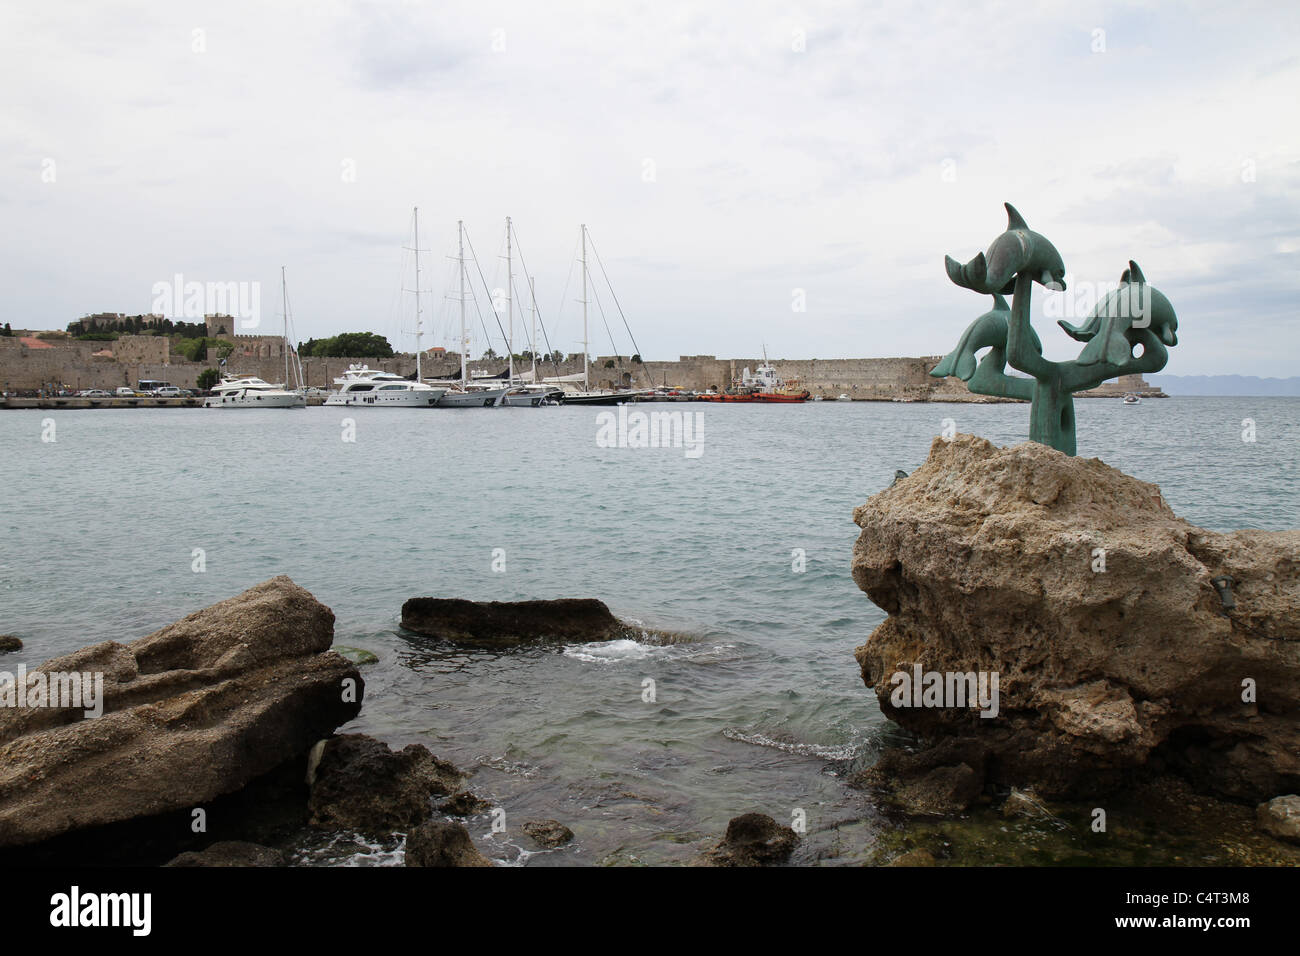 Monument to the dolphins at seaside in Rhodes, Greece. - Stock Image